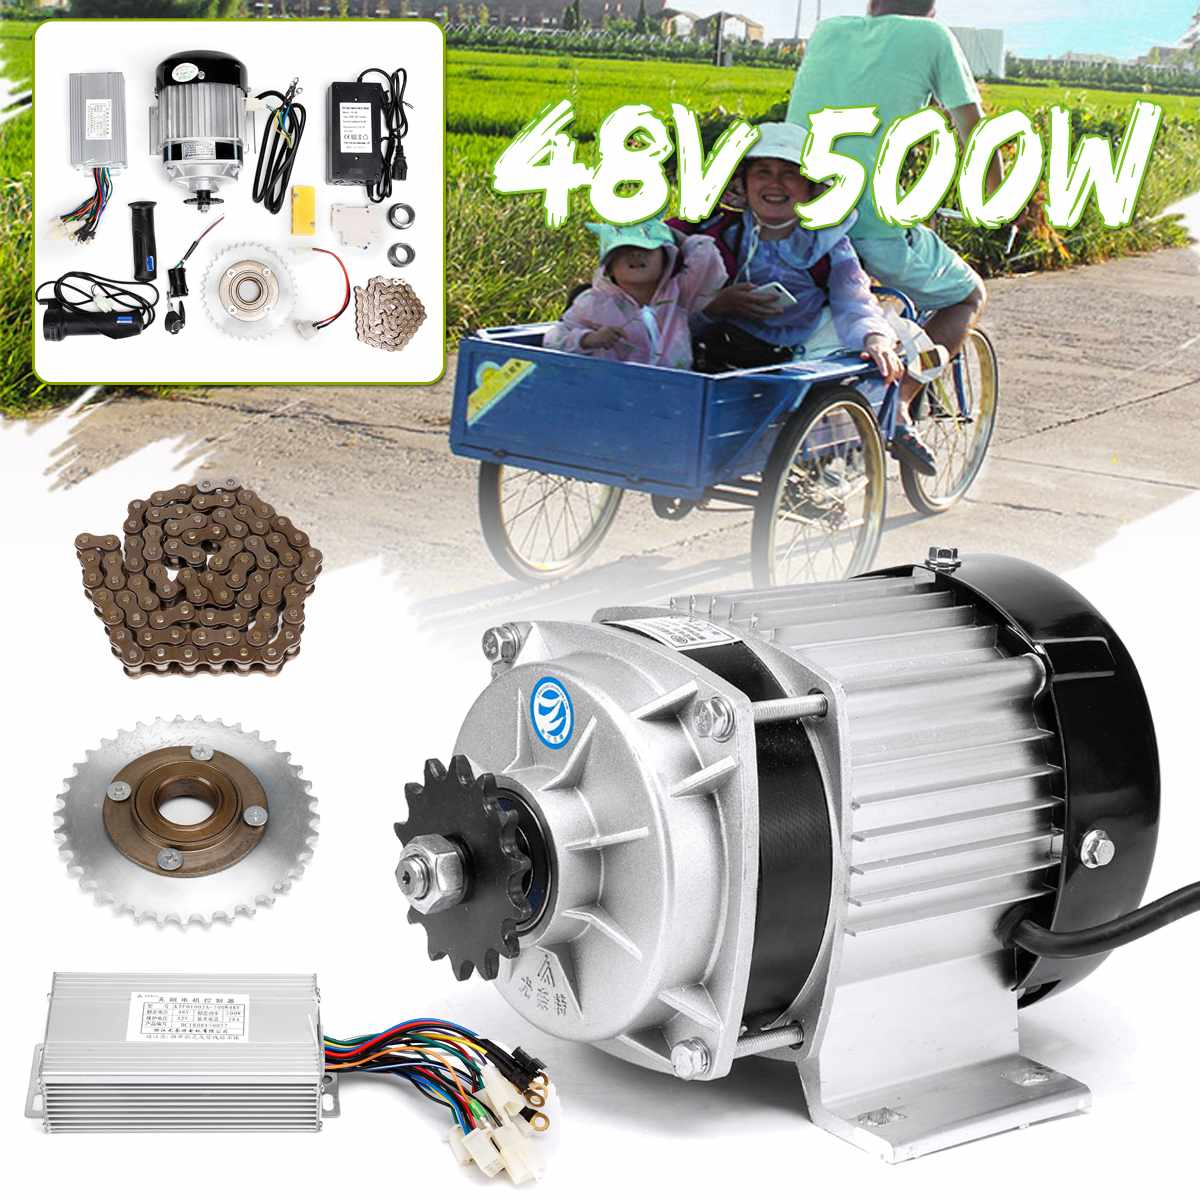 48V 500W DC Motor Engine Electric Bicycle Mid Motor With Motor Controller Flywheel Chain Kit For E-Trishaw Go Kart Scooter image